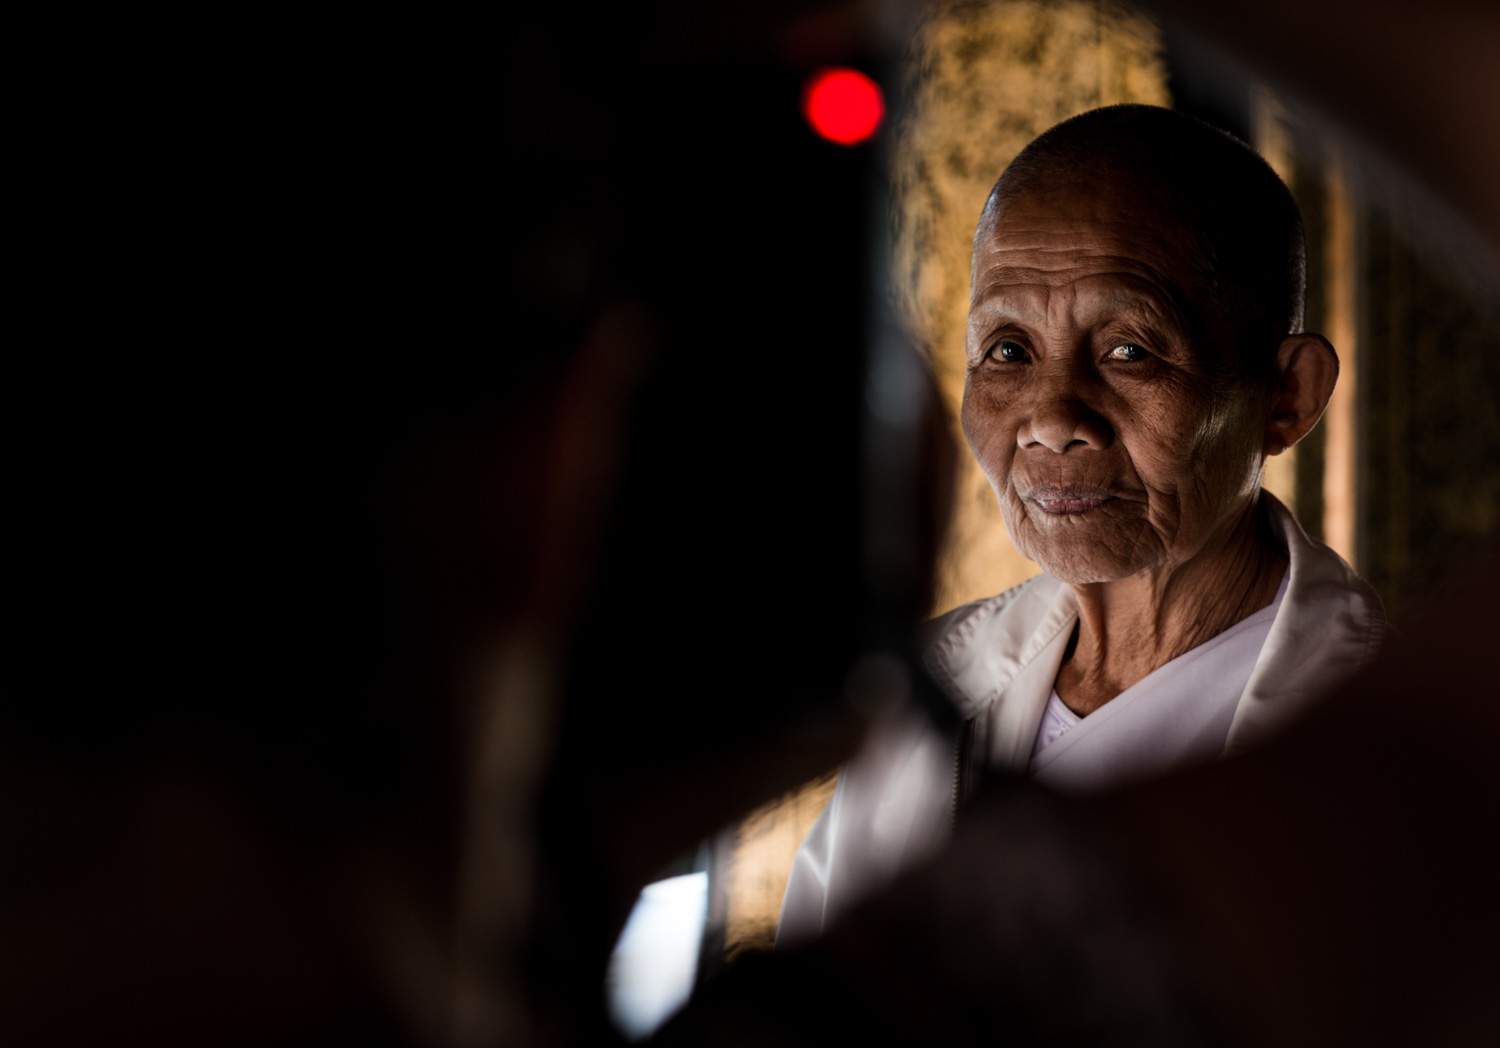 Buddhist Nun Finding Your Strength In Isolation - 3 Methods To Make Your Subject Pop!